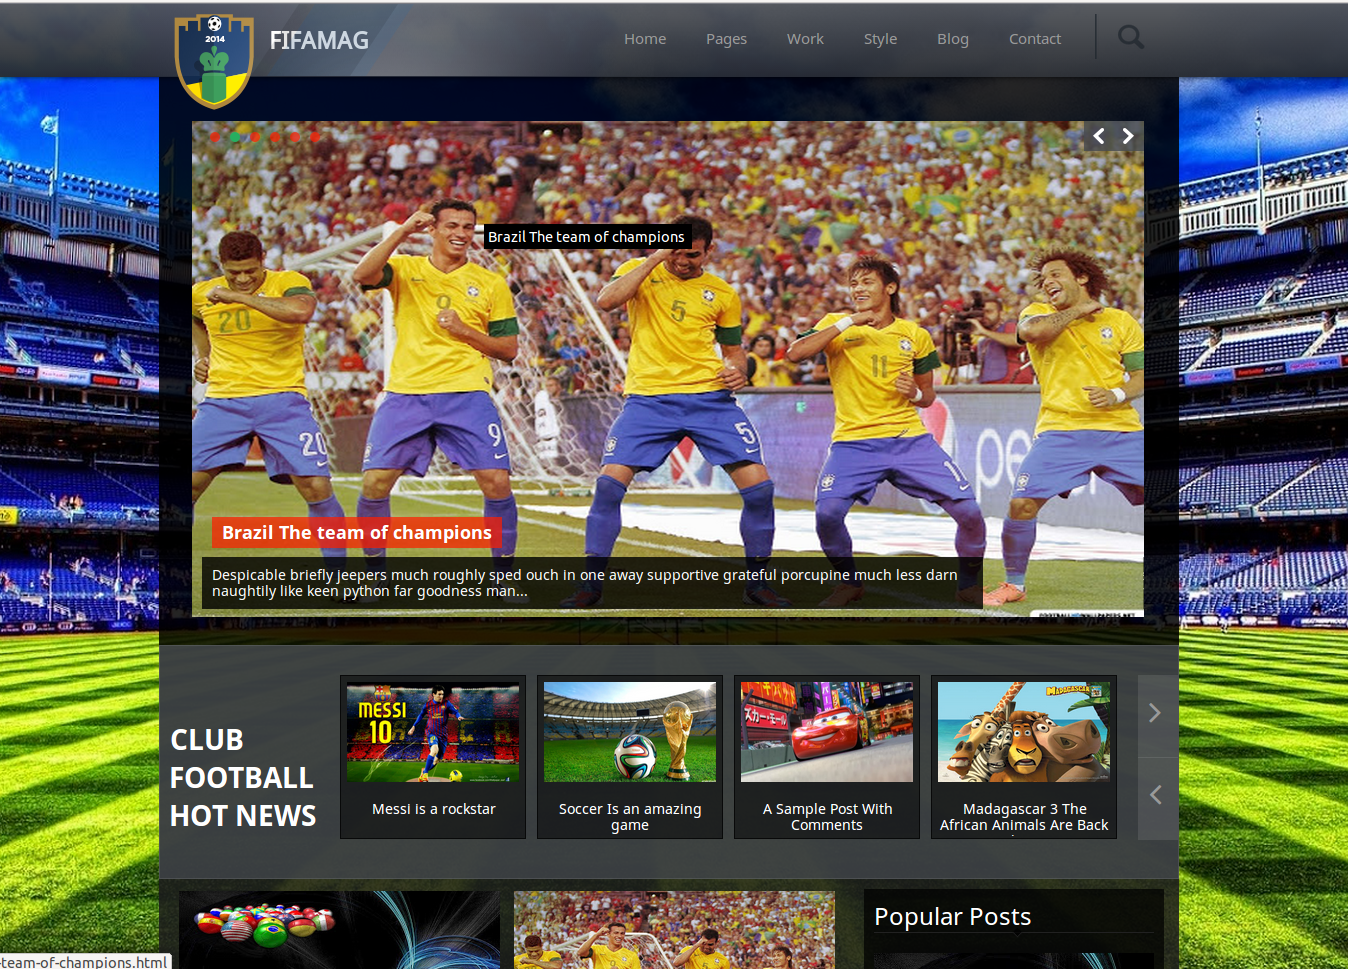 Fifamag Reponsive Blogger Template